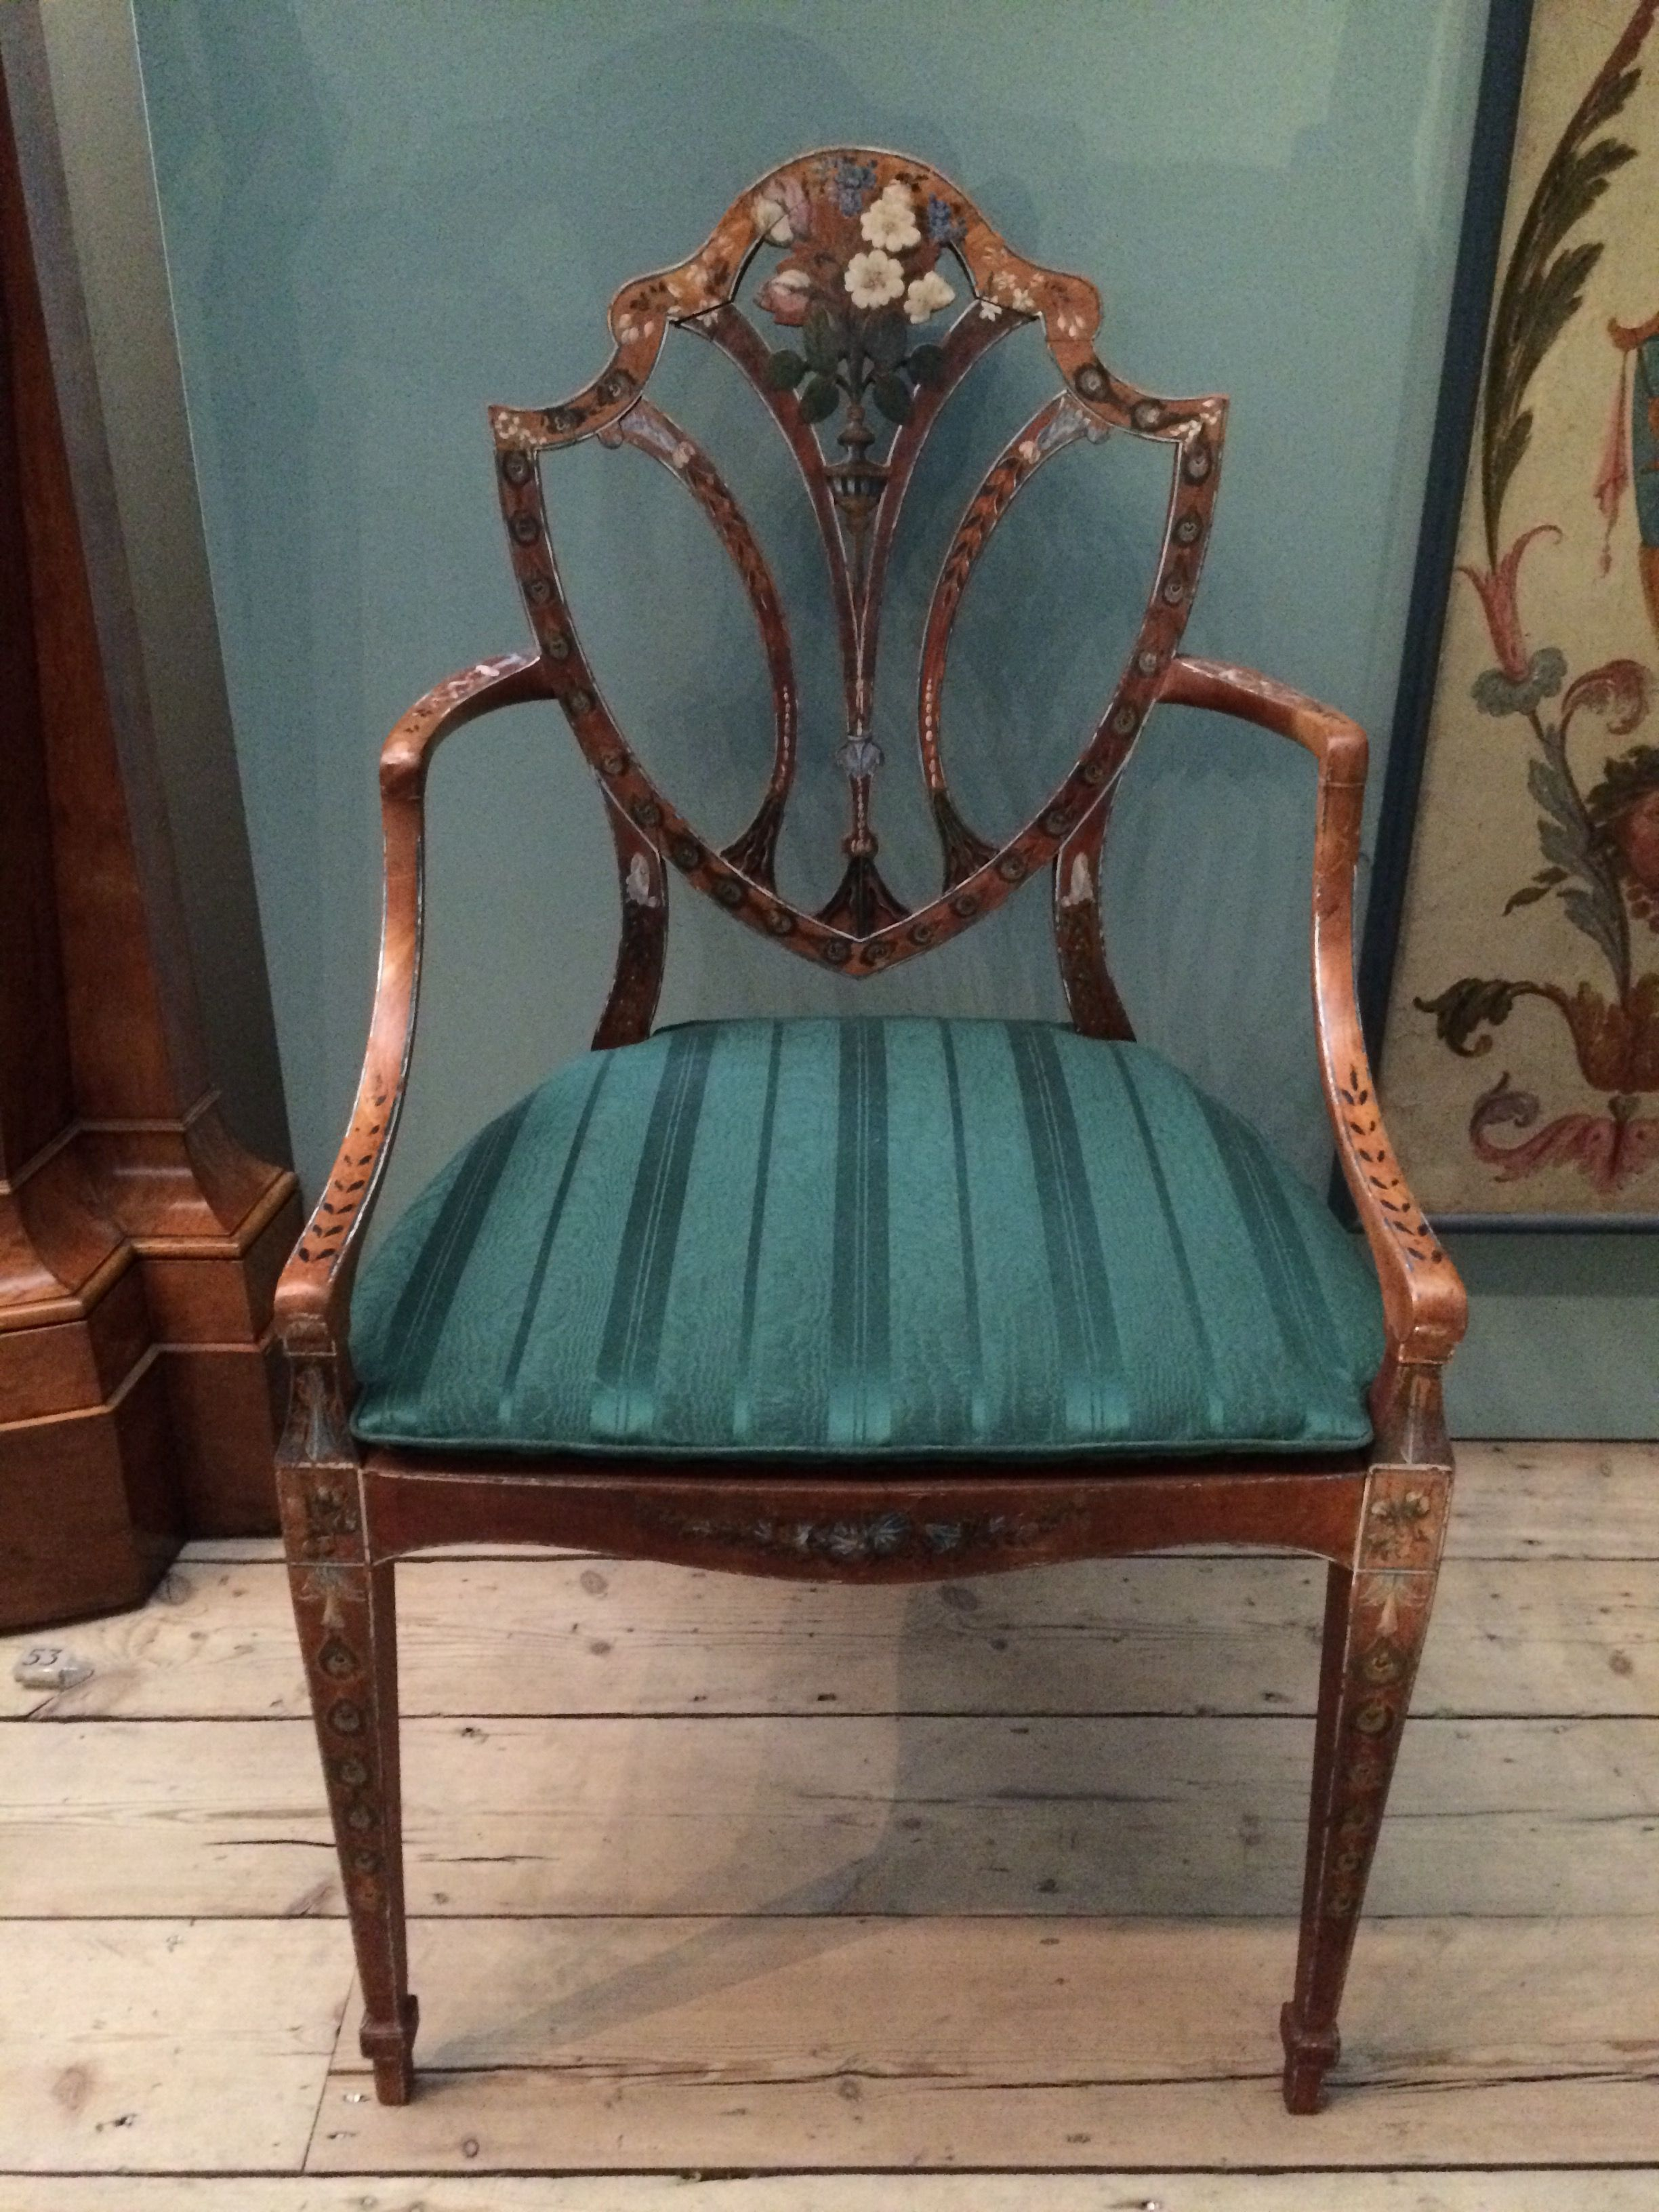 Hepplewhite style neo classical elbow chair London 1790 V&A